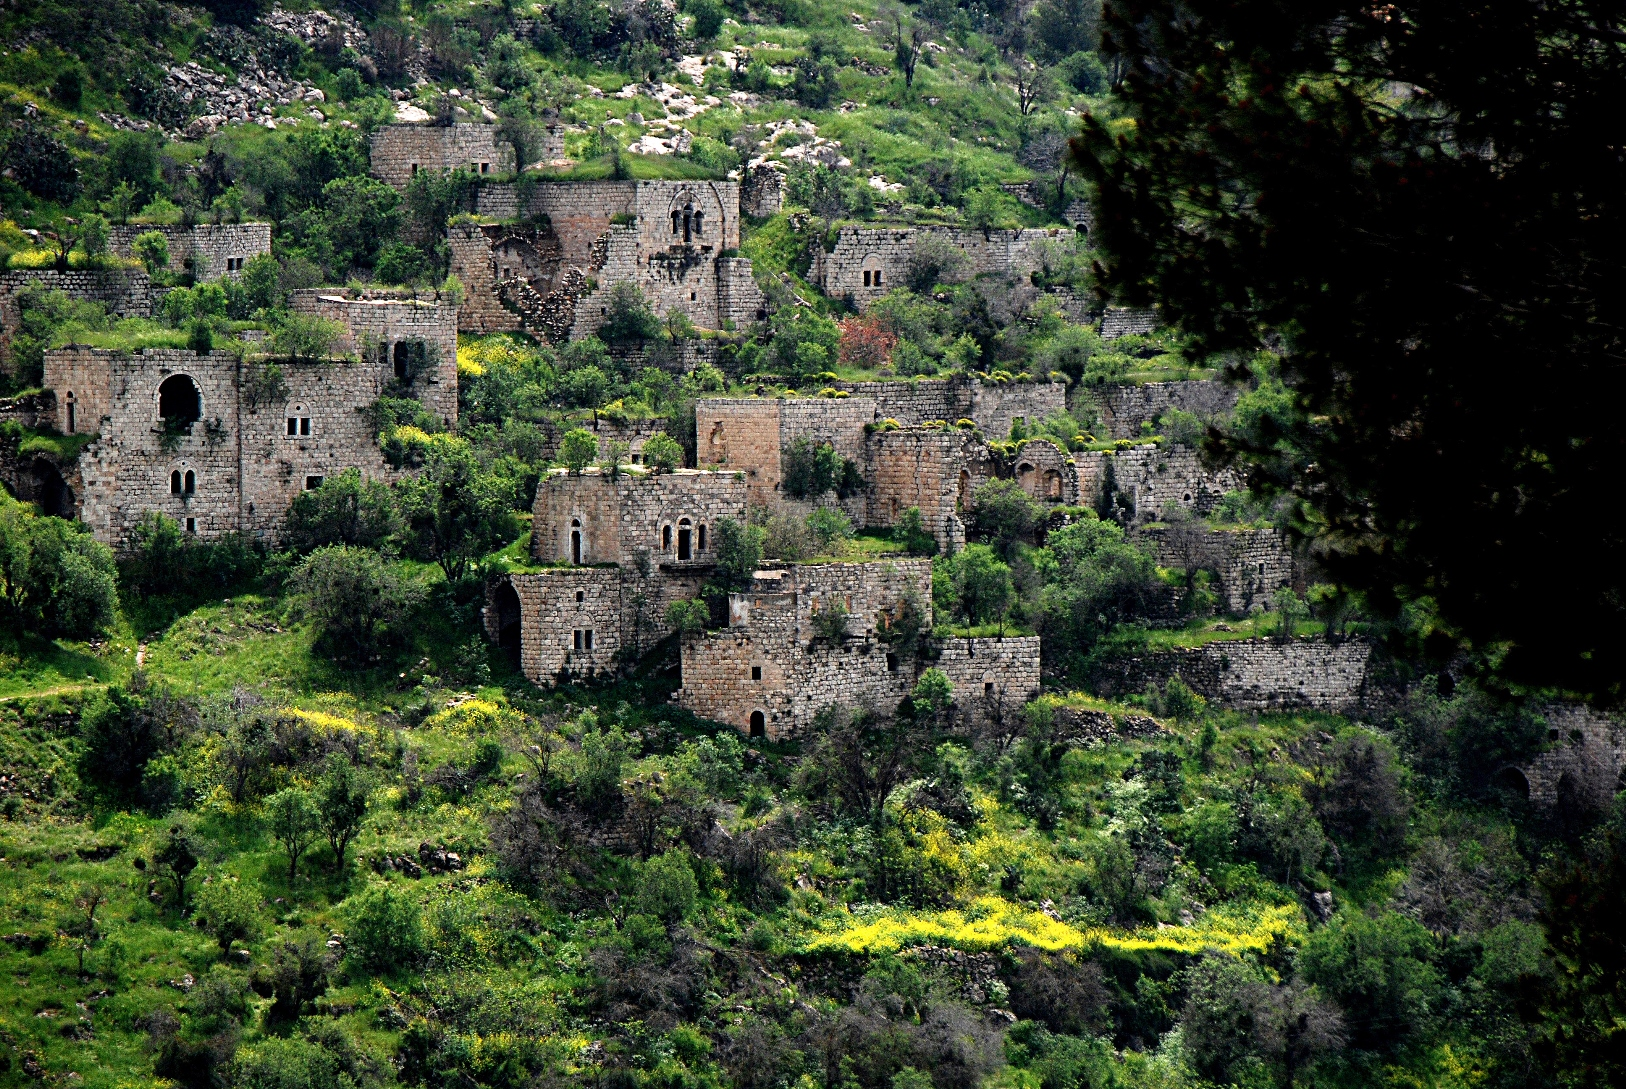 The old village of Lifta on the outskirts of Jerusalem. Photo by Yehudit Eliaf